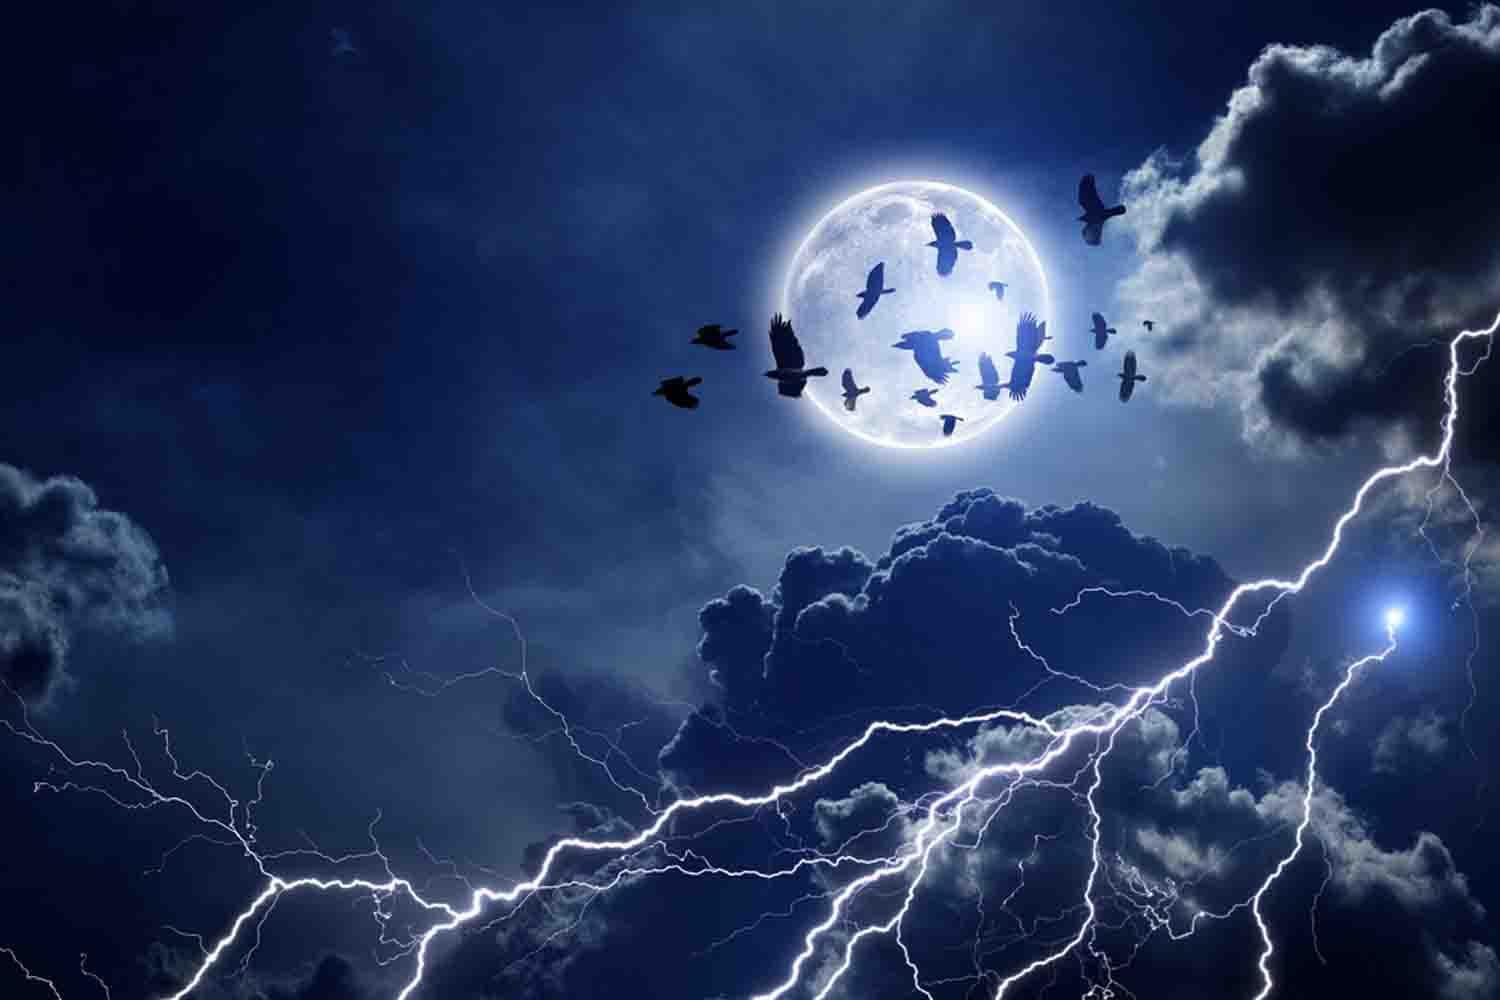 Thunderstorm Wallpaper for Android   APK Download 1500x1000